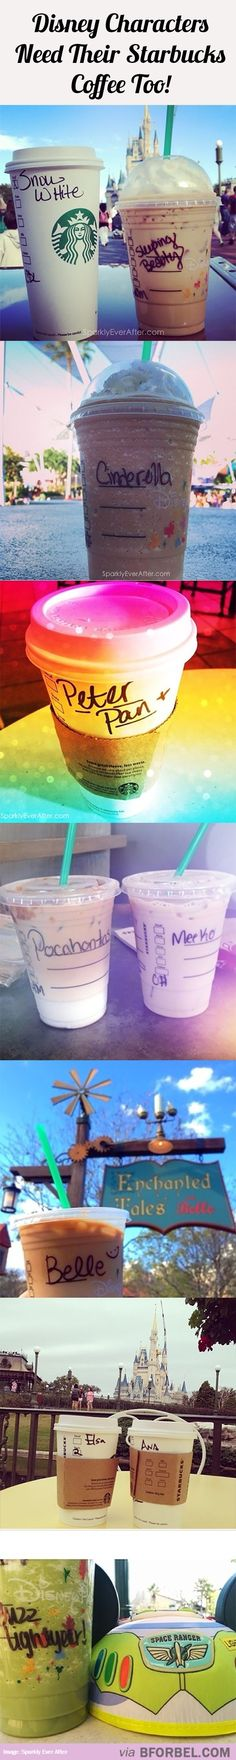 10 Disney Characters Who Need Their Starbucks…